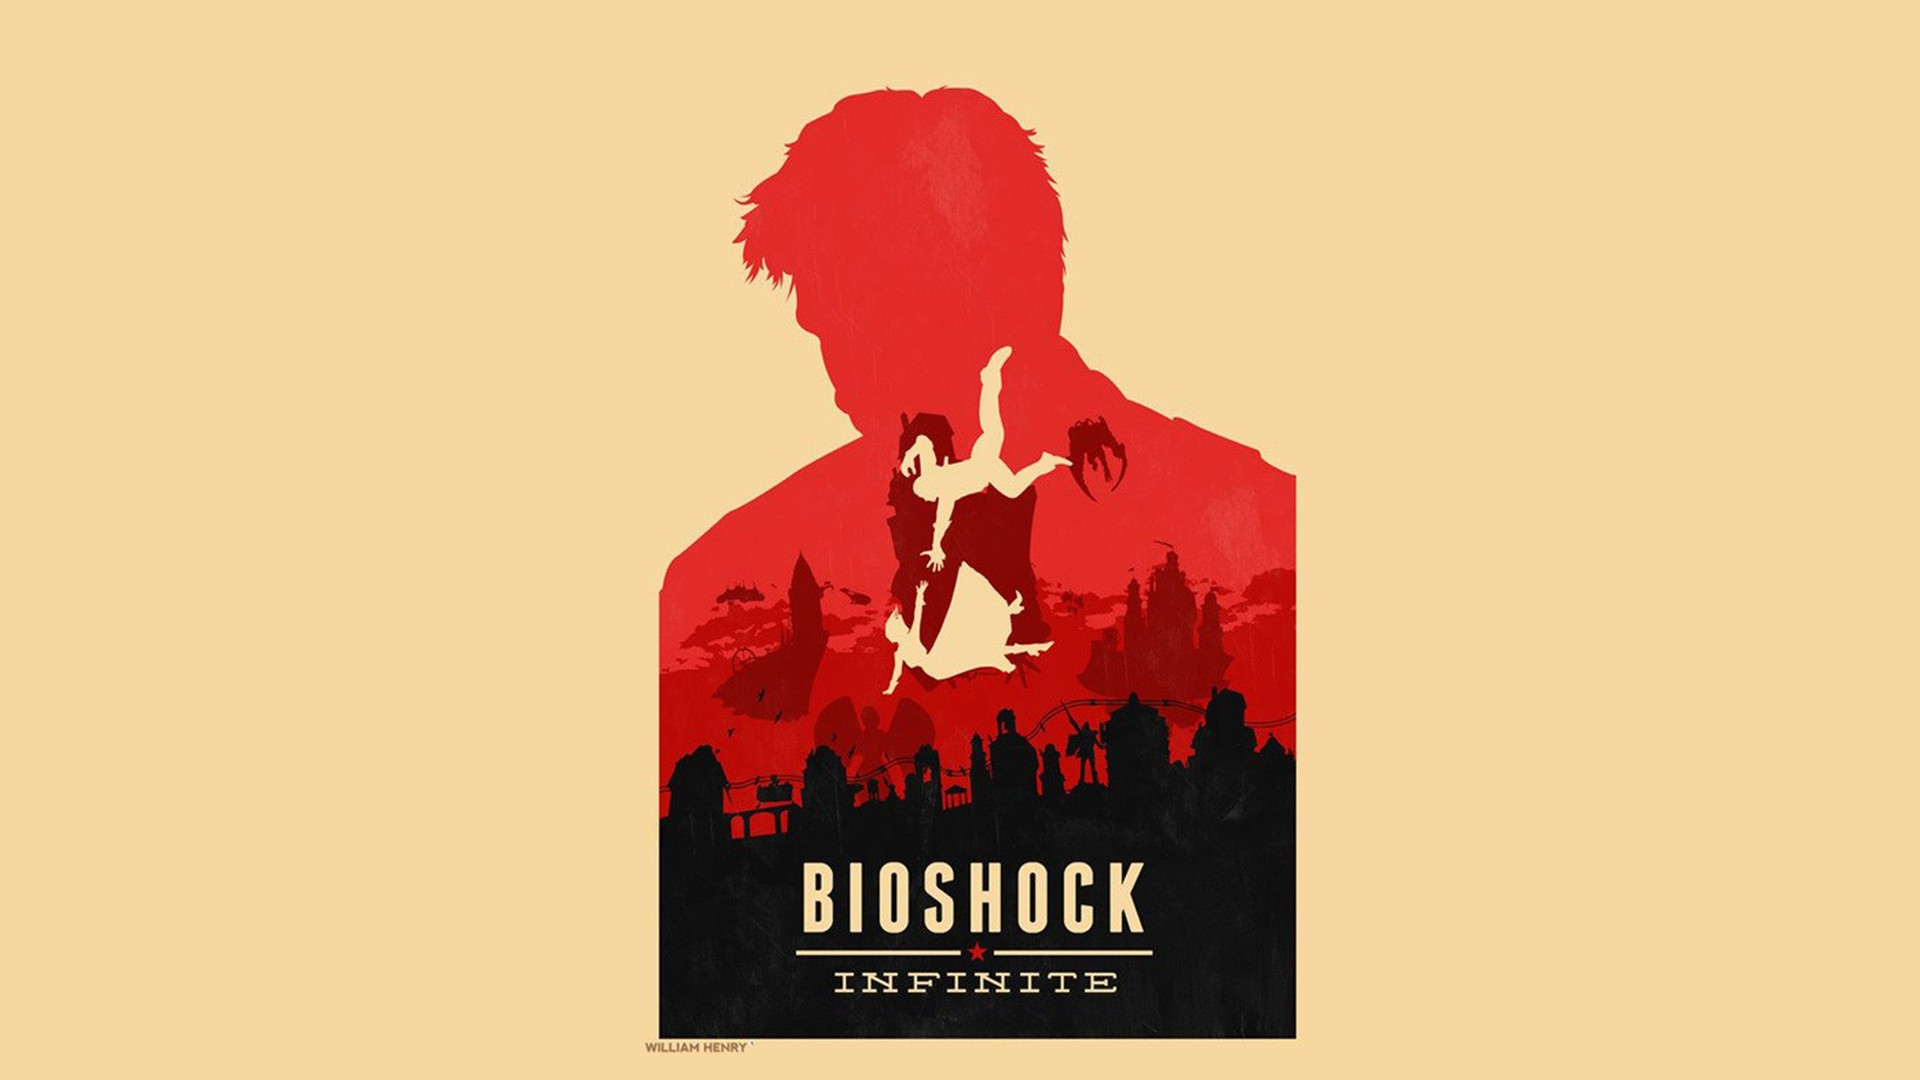 Bioshock Infinite Wallpaper 39 Bioshock Infinite Wallpapers and 1920x1080